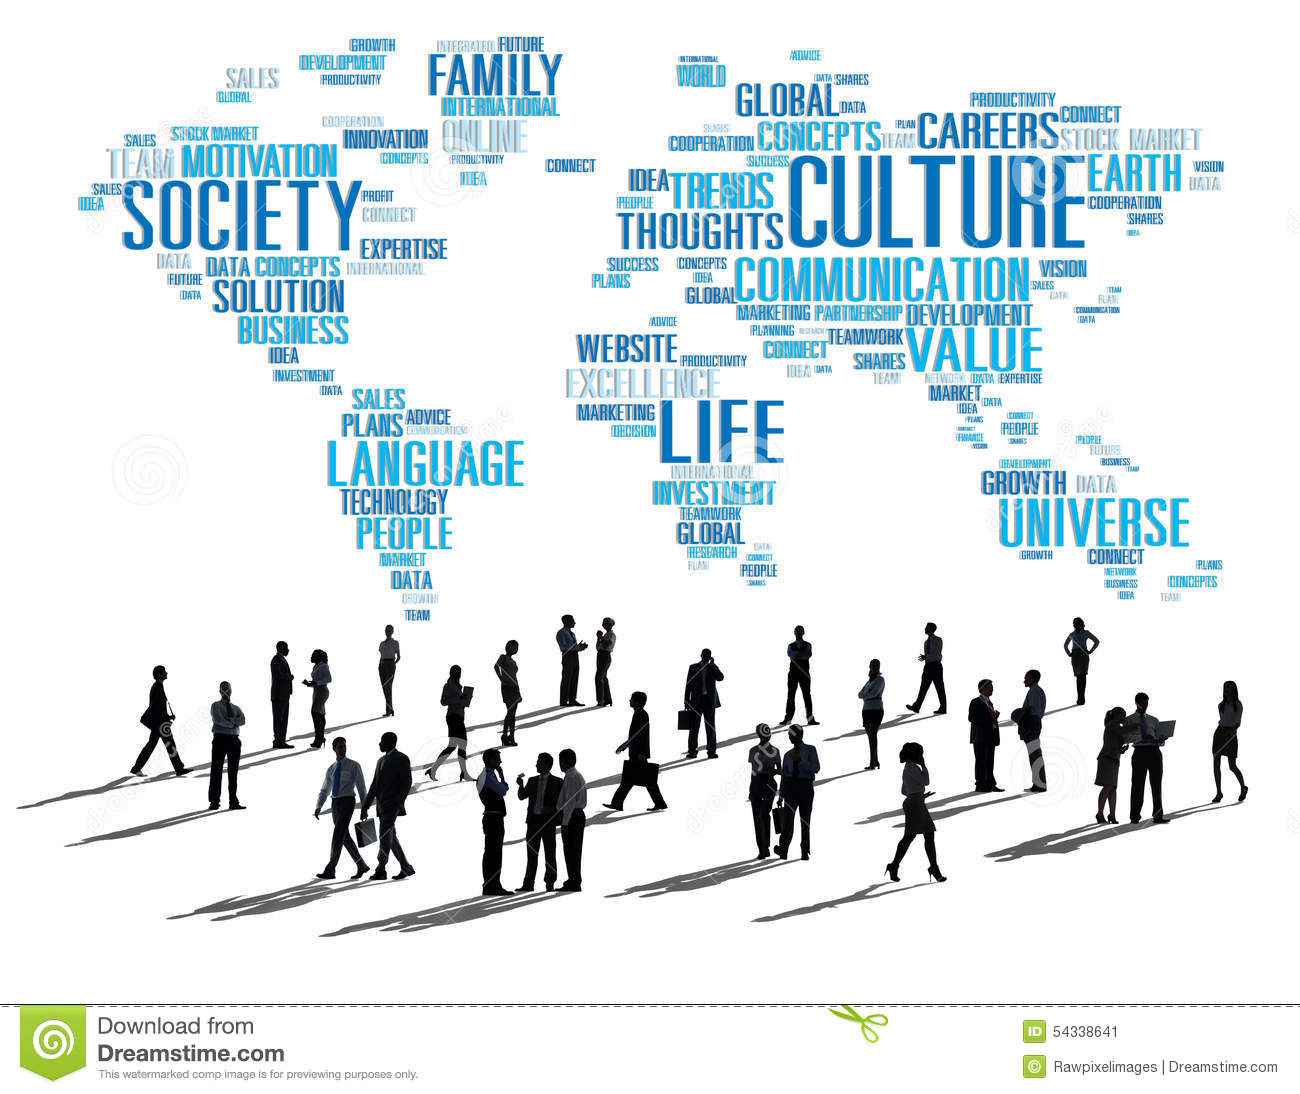 the concept of culture and society essay Culture is defined as an expression of society through material things and beliefs culture encompasses ideology, values, religion and artistic works subcultures are values and norms distinct from the societal majority a variety of subcultures can exist under one overriding culture the united.